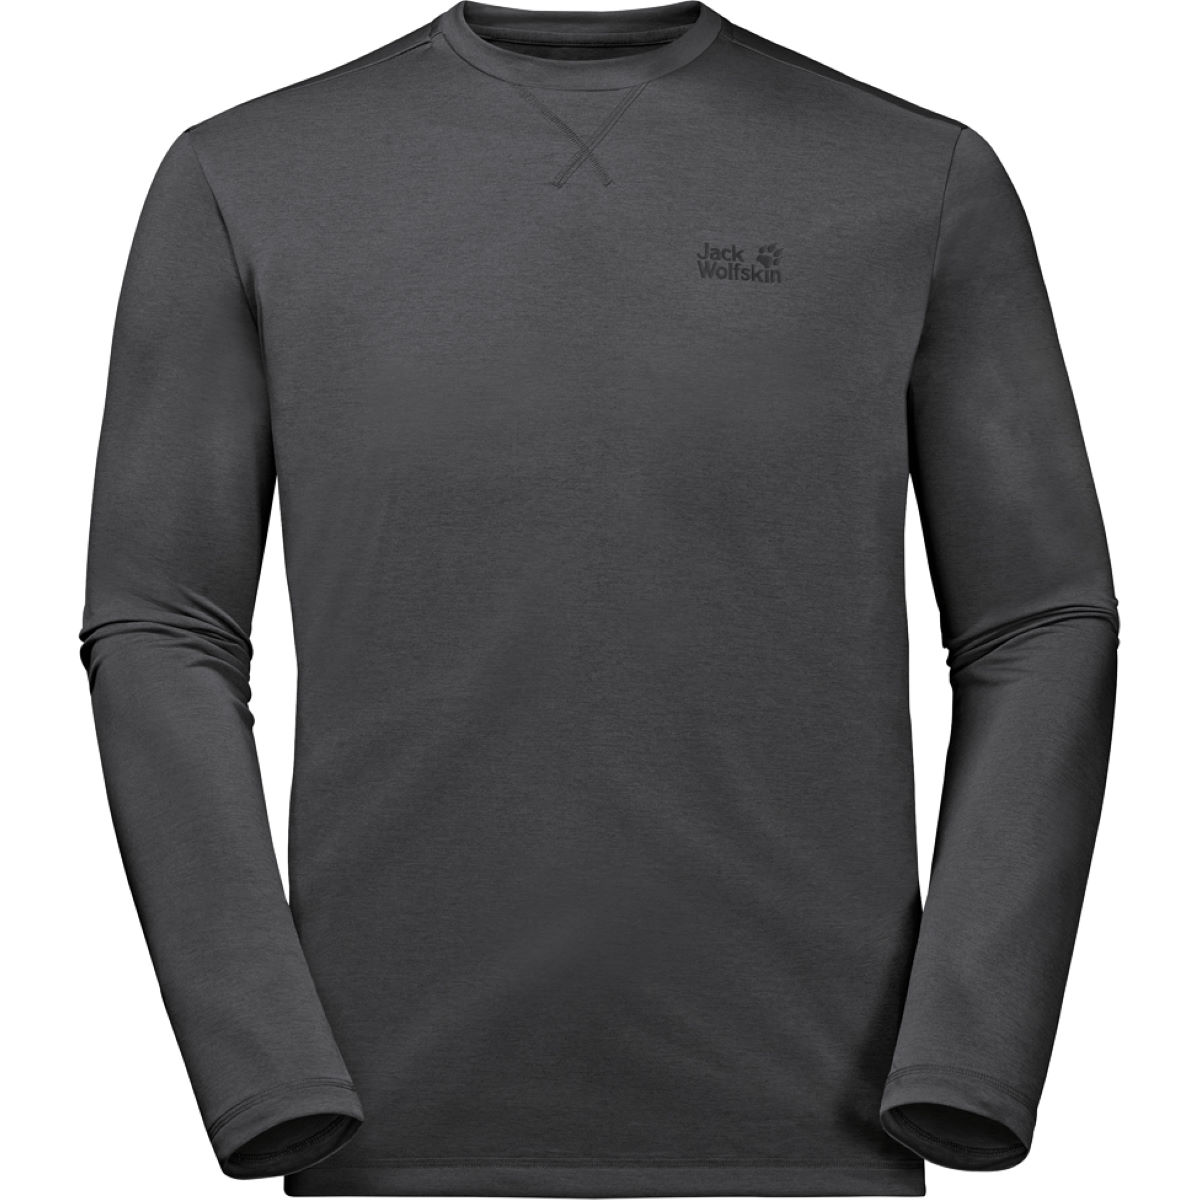 Image of Maillot Jack Wolfskin Crosstrail (manches longues) - 2XL Gris